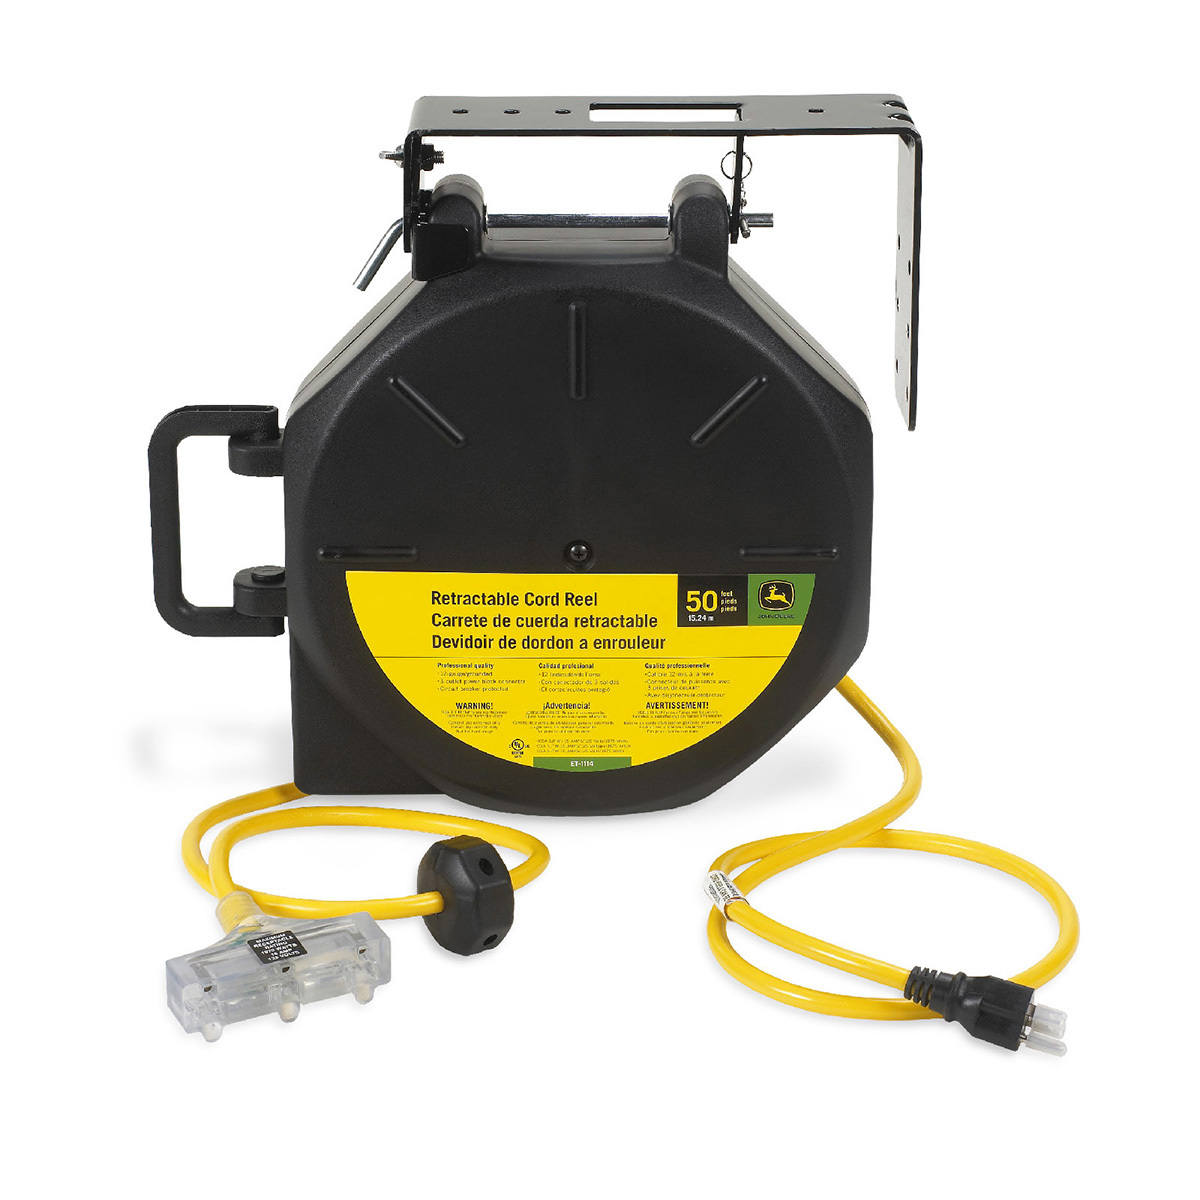 Air Compressors Home Workshop Products John Deere Us >> 50 Retractable Cord Reel 12 Gauge Et 1114 J